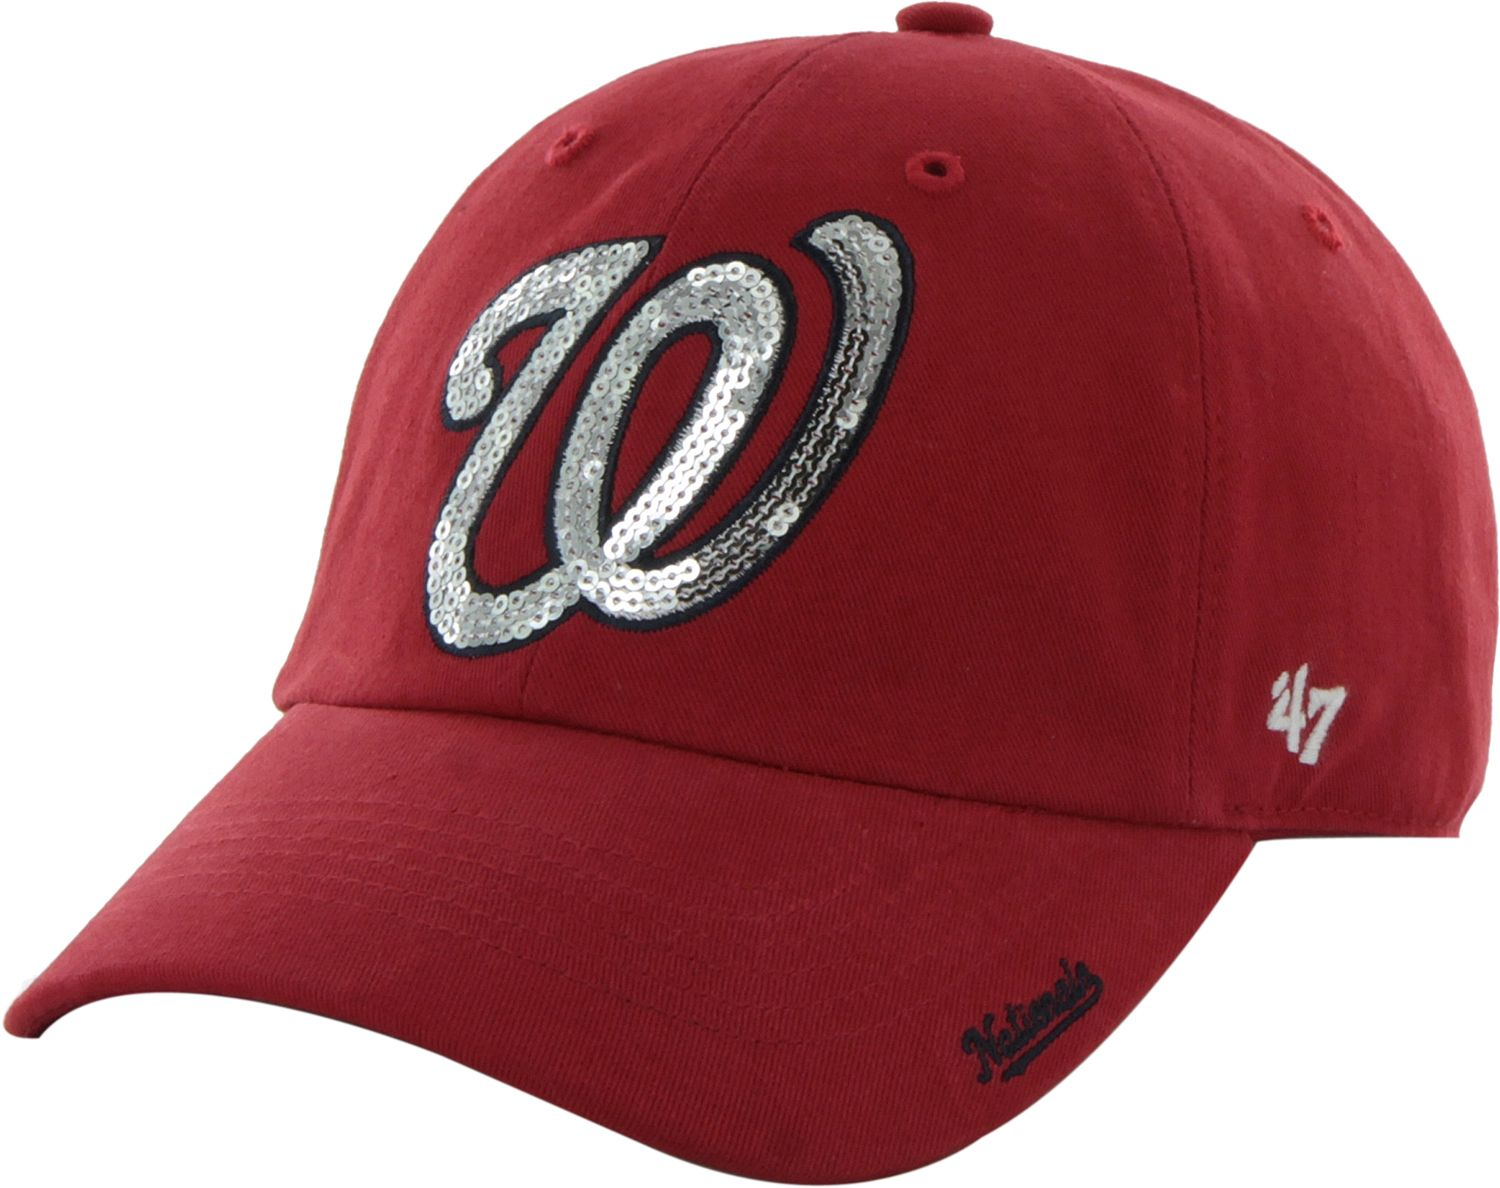 1bb725e2227 best price 47 womens washington nationals sparkle red adjustable hat ee192  e82e0